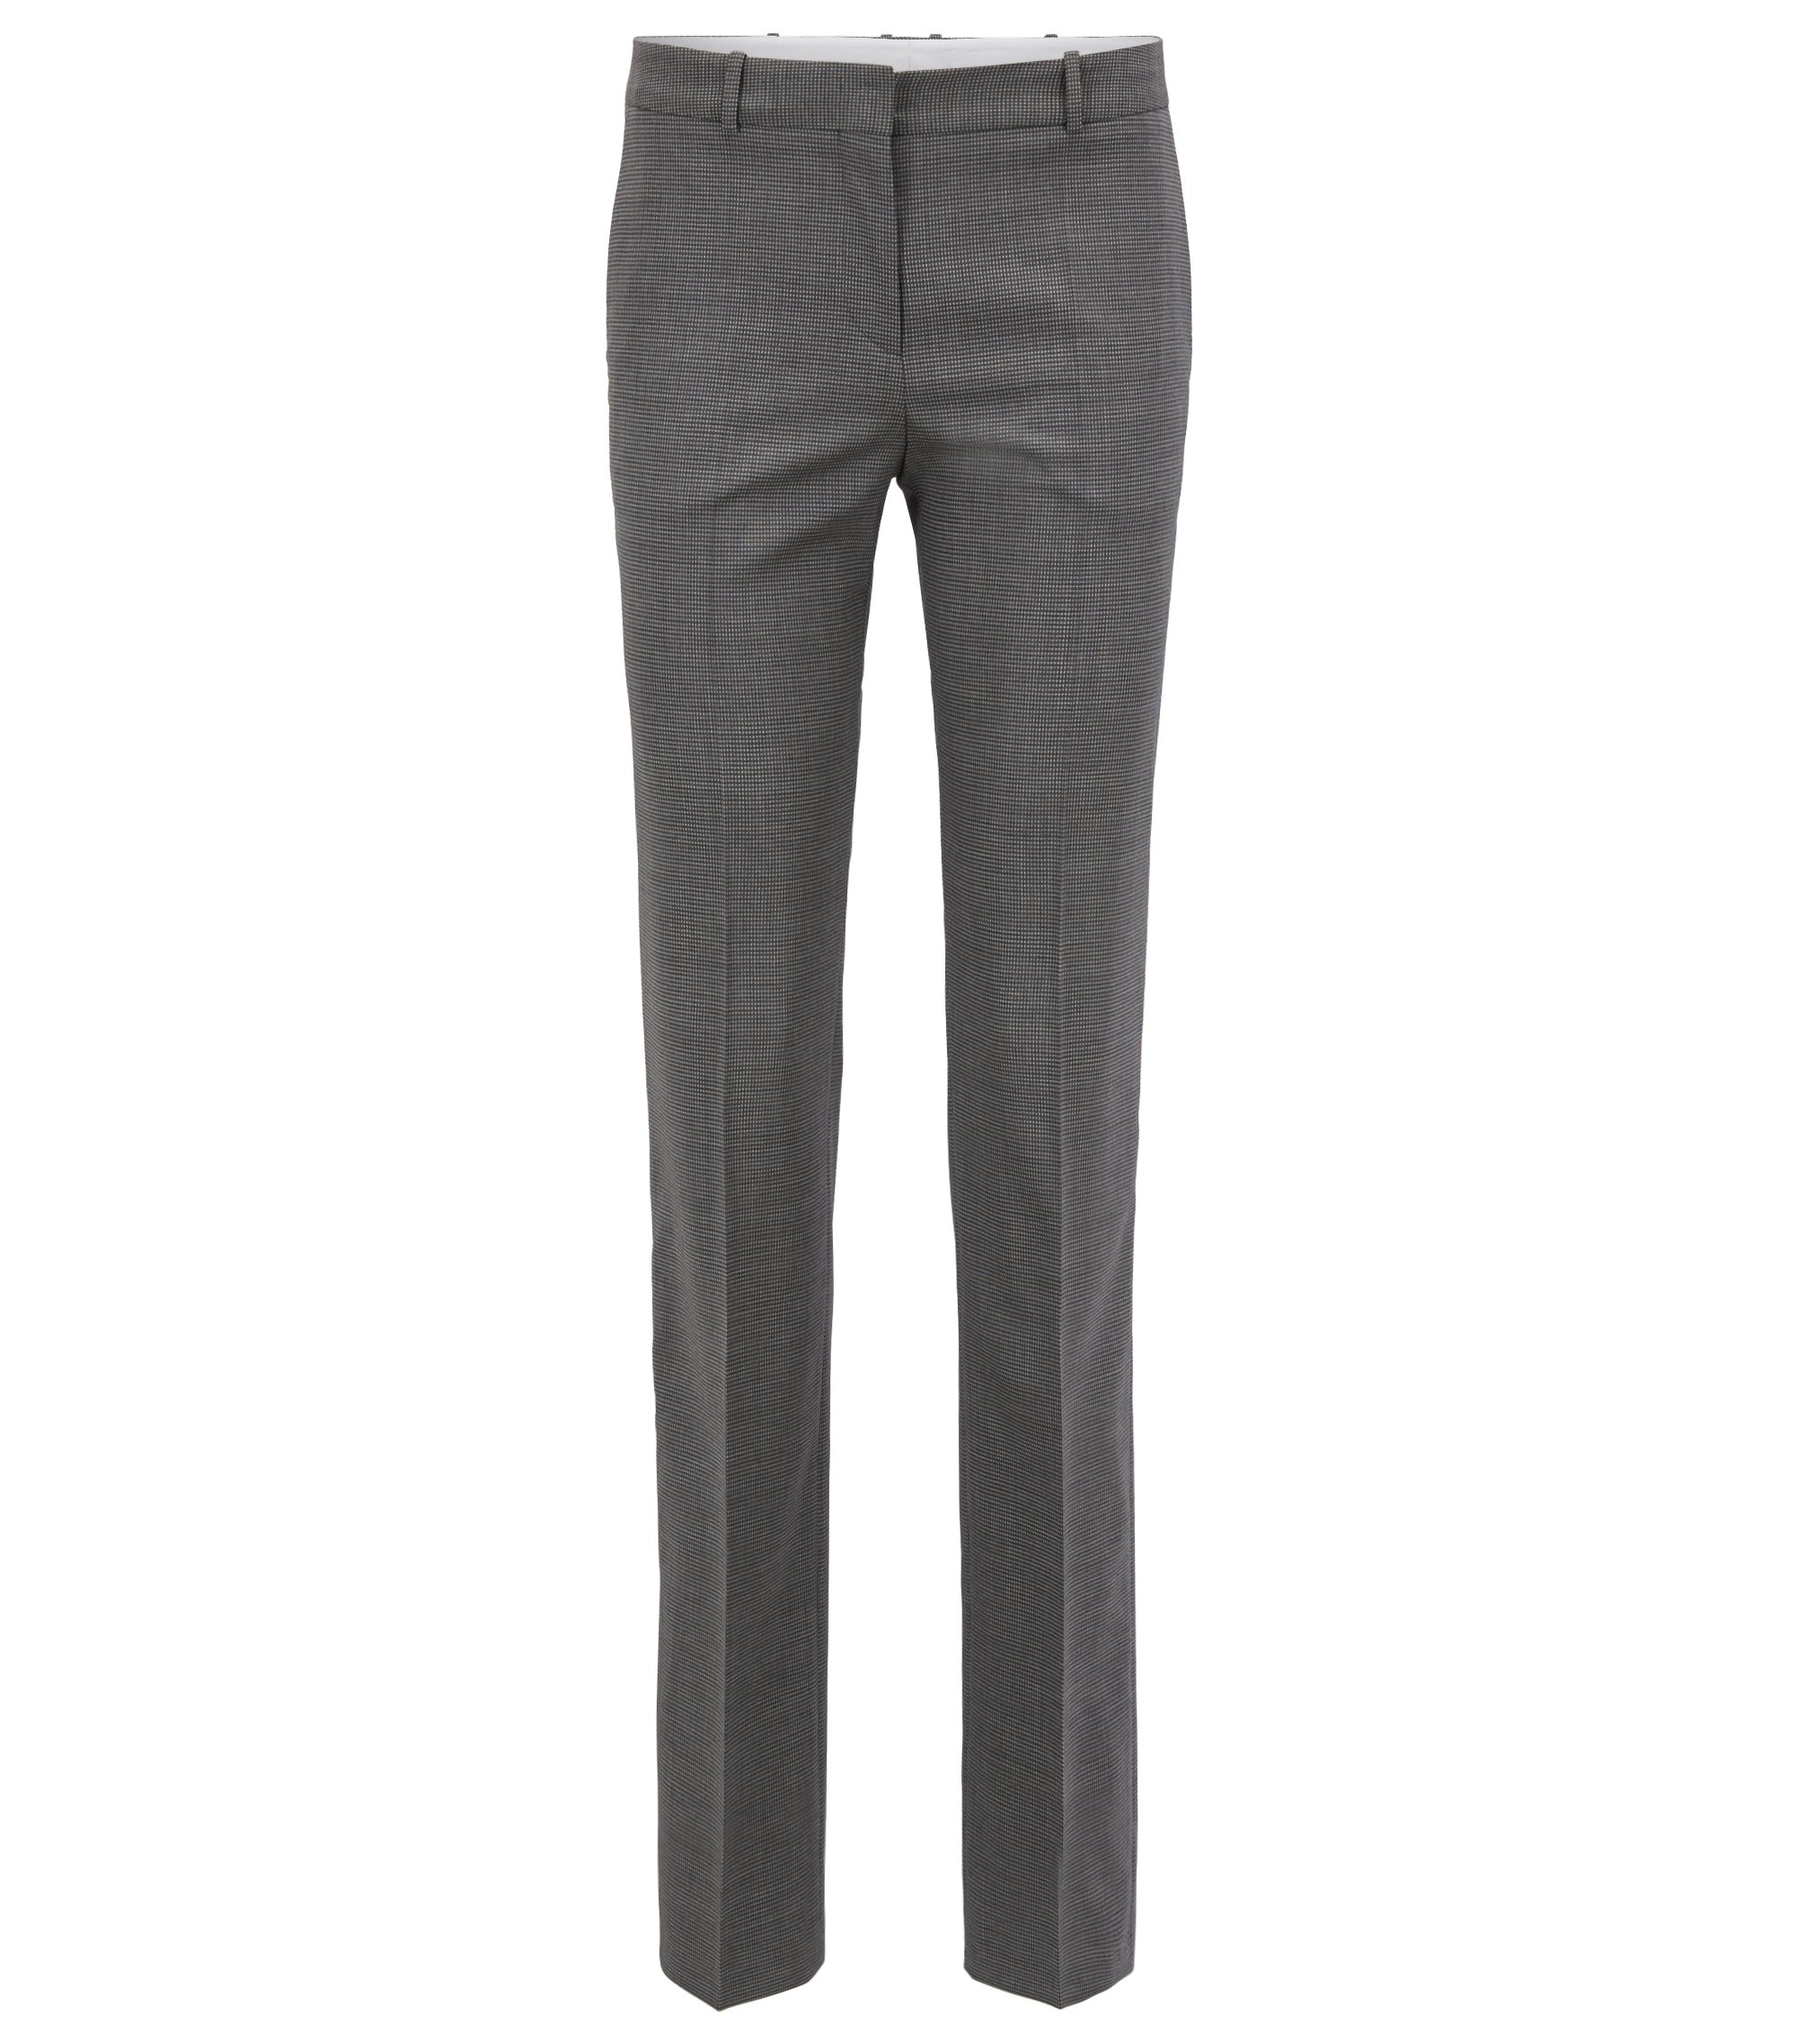 Pantalon ajusté Regular Fit en laine vierge stretch, Gris